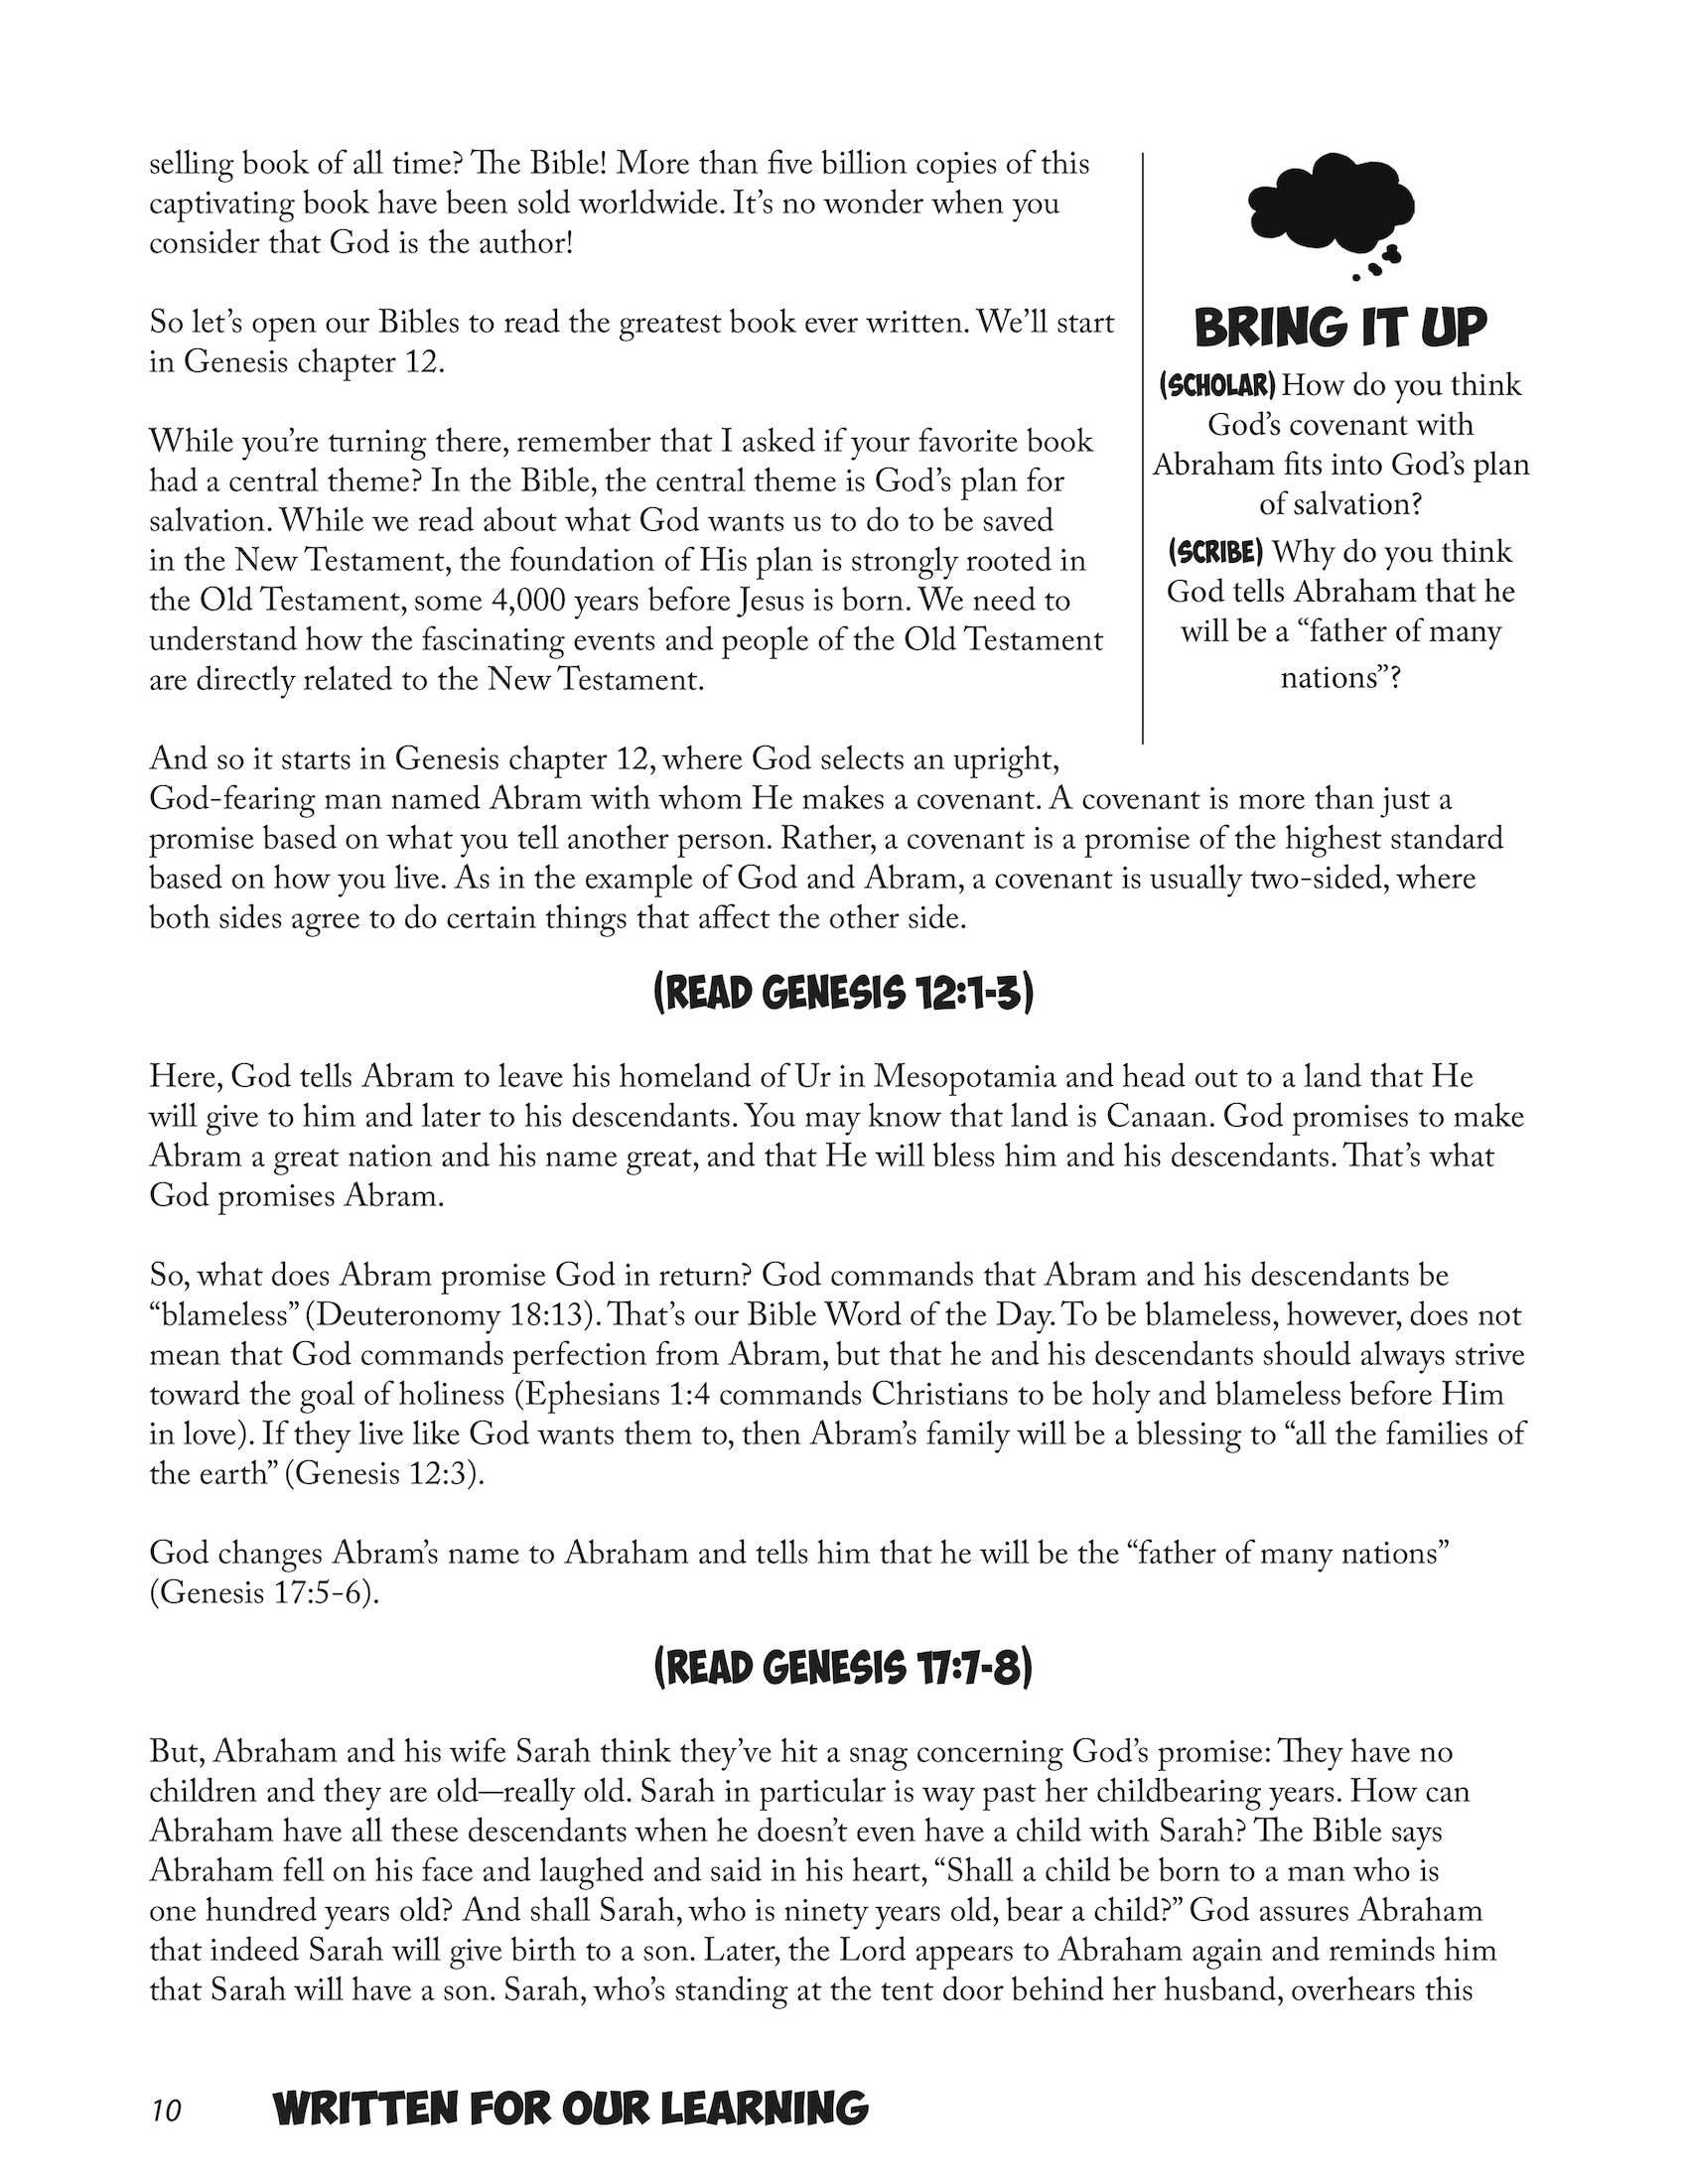 written-for-our-learning.-chapter-one-page-two.jpg